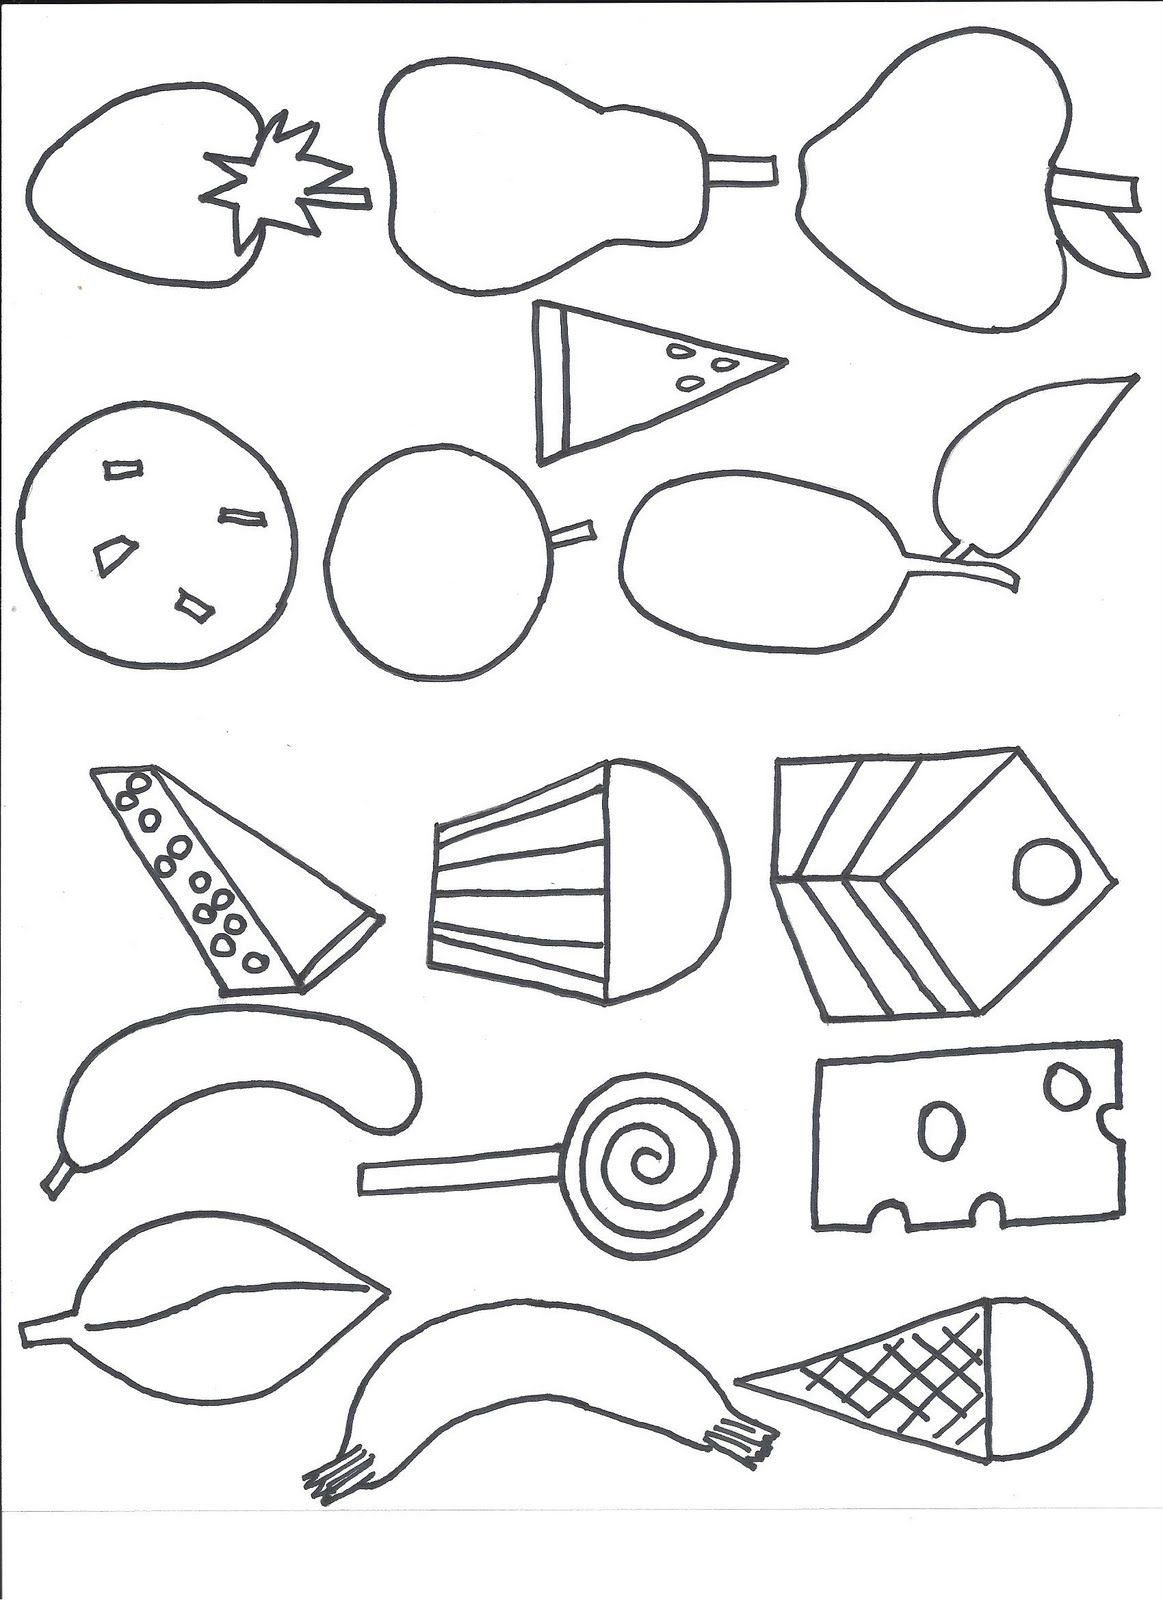 hungry caterpillar coloring pages - photo#26